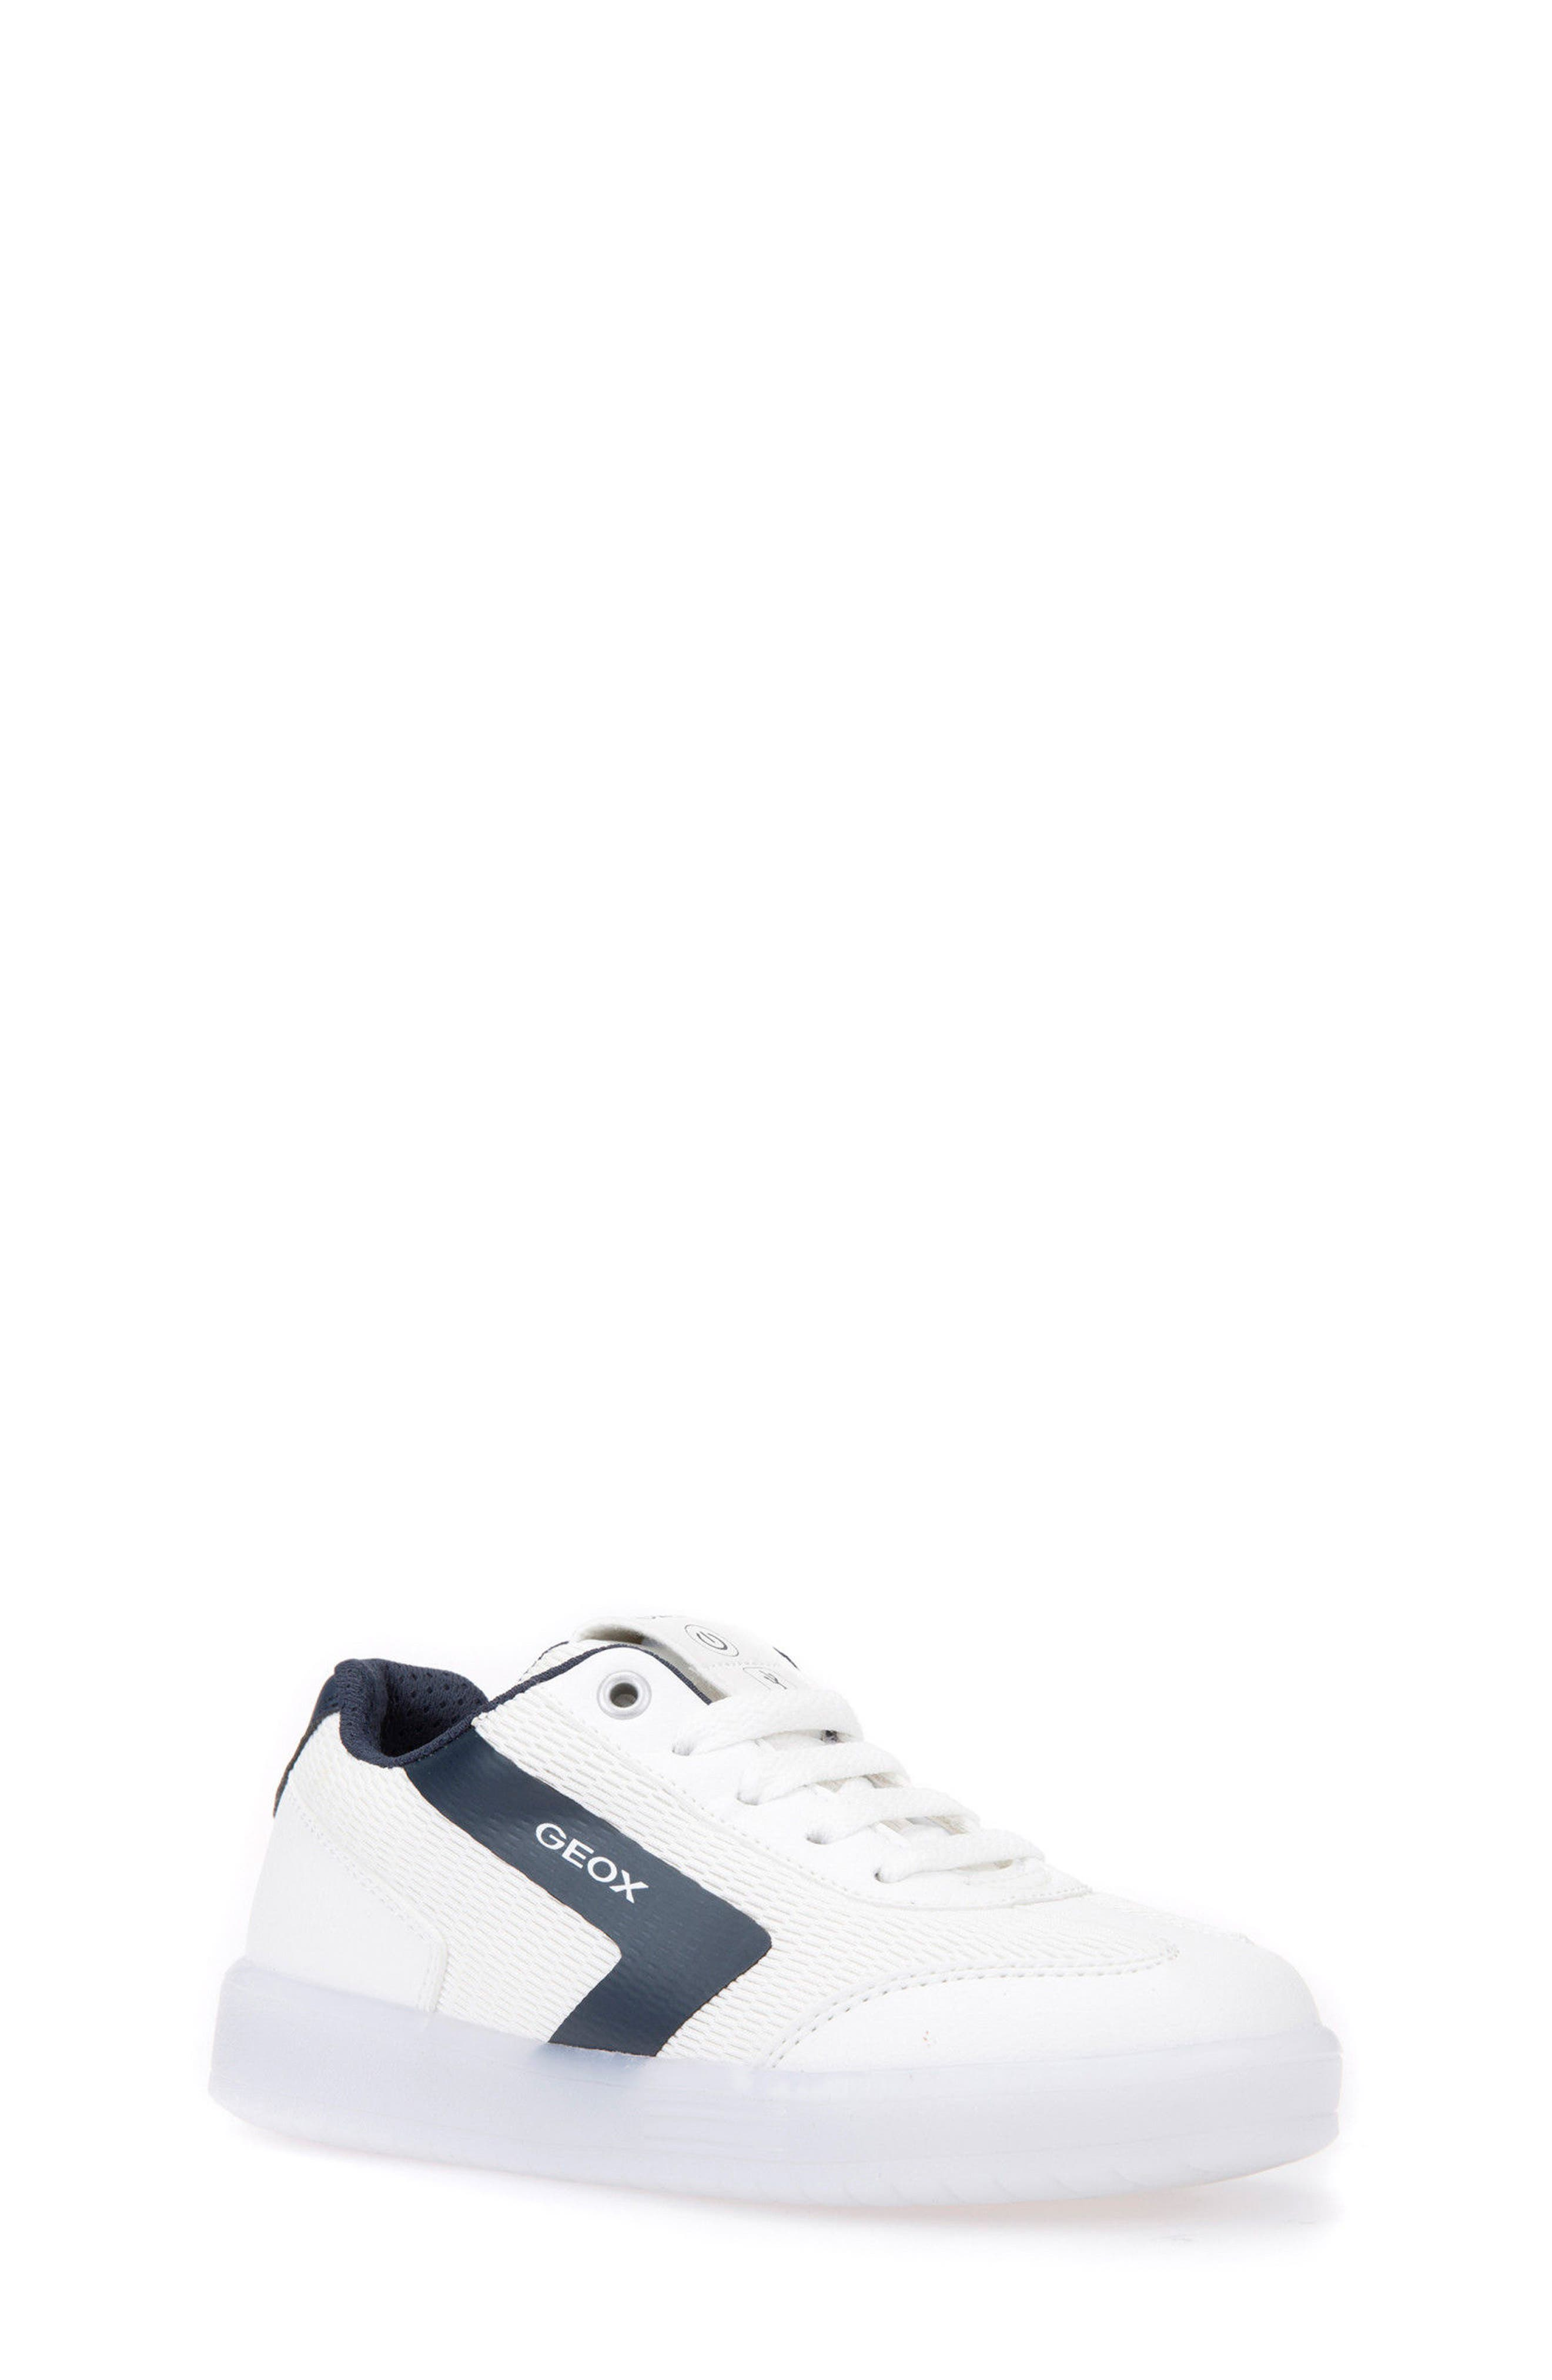 Kommodor Light-Up Low Top Sneaker,                             Main thumbnail 1, color,                             WHITE/ NAVY